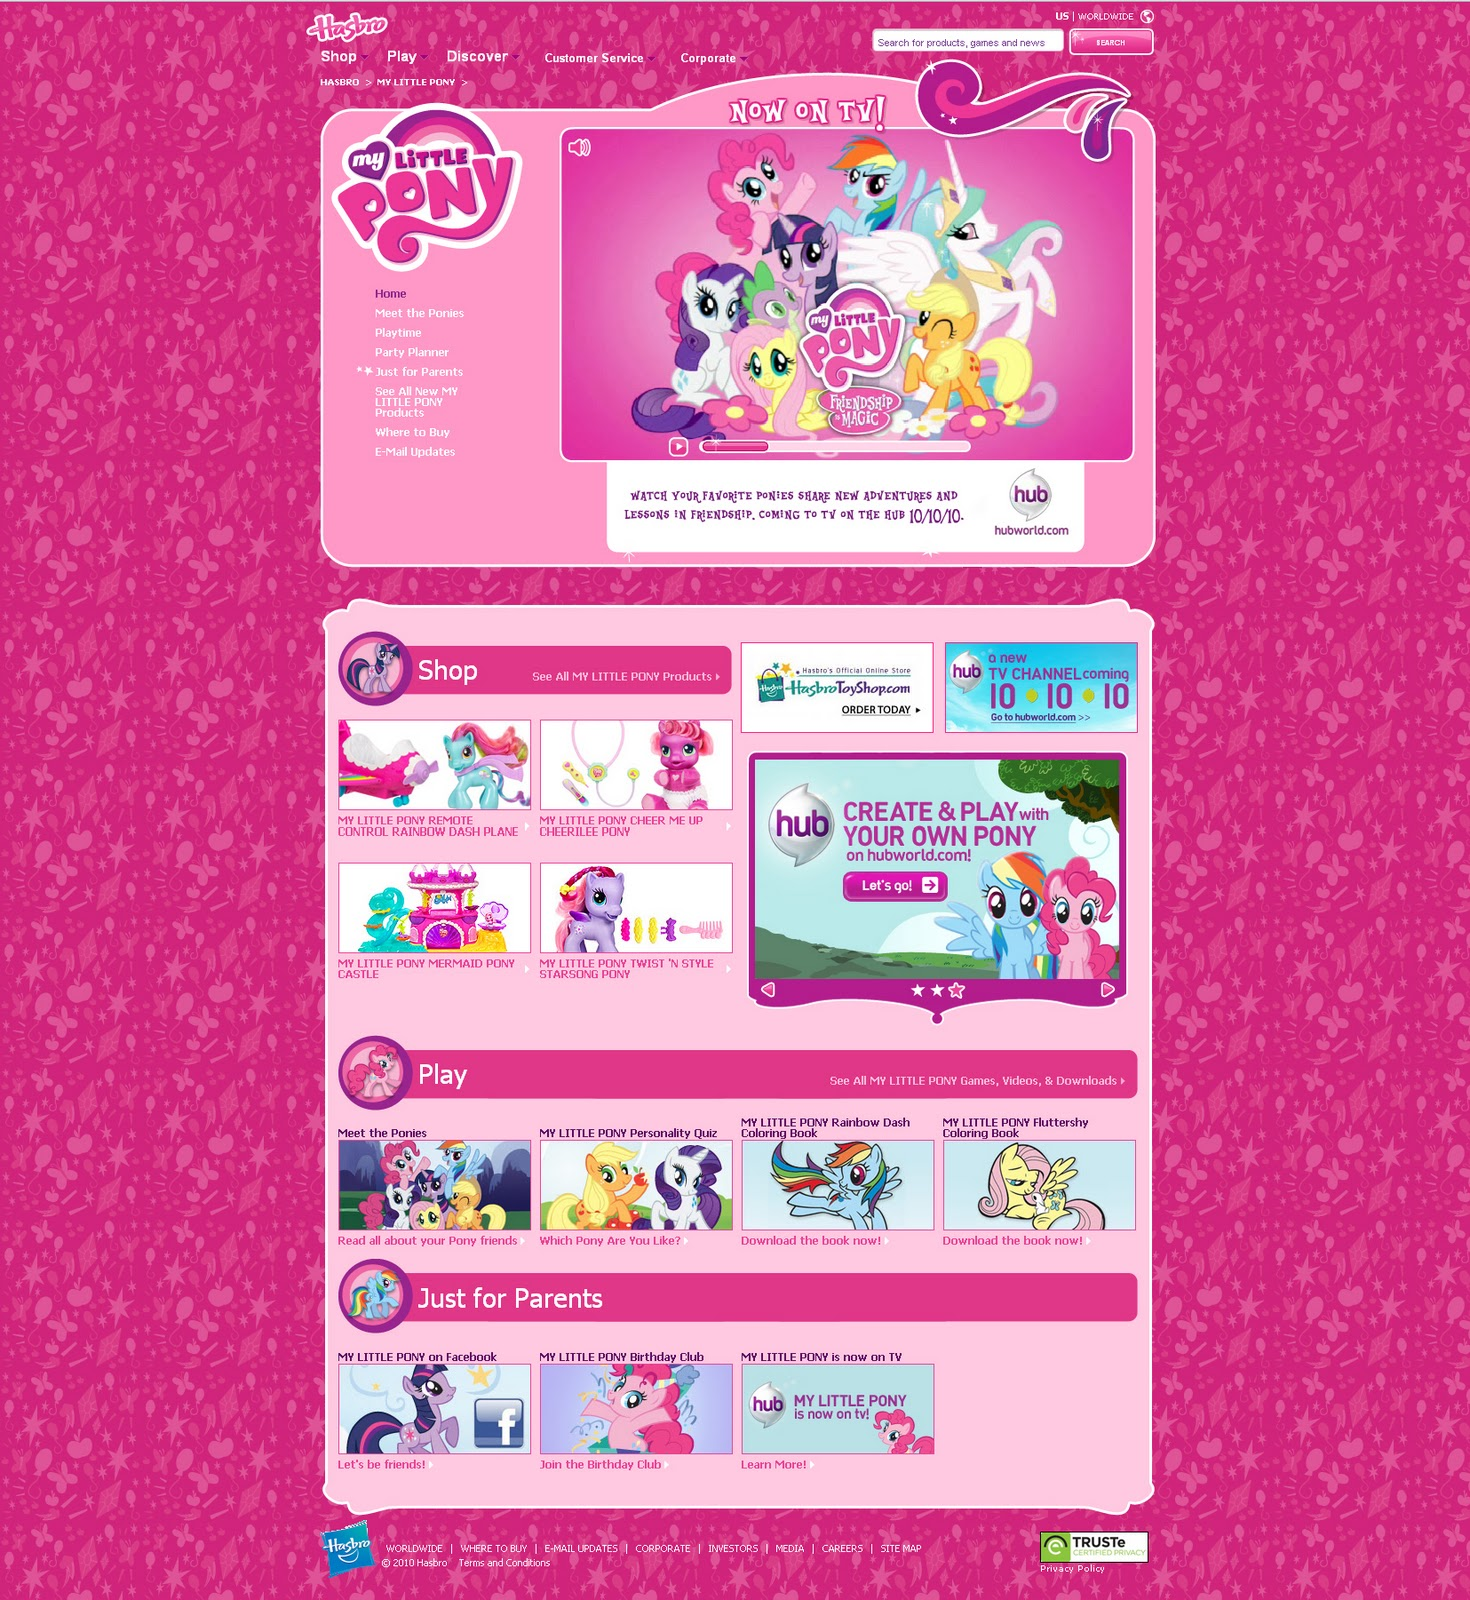 My little pony coloring pages hasbro - Today Both Mylittlepony Com And Hubworld Com Were Updated With The New Look Videos Games Coloring Pages Plus More